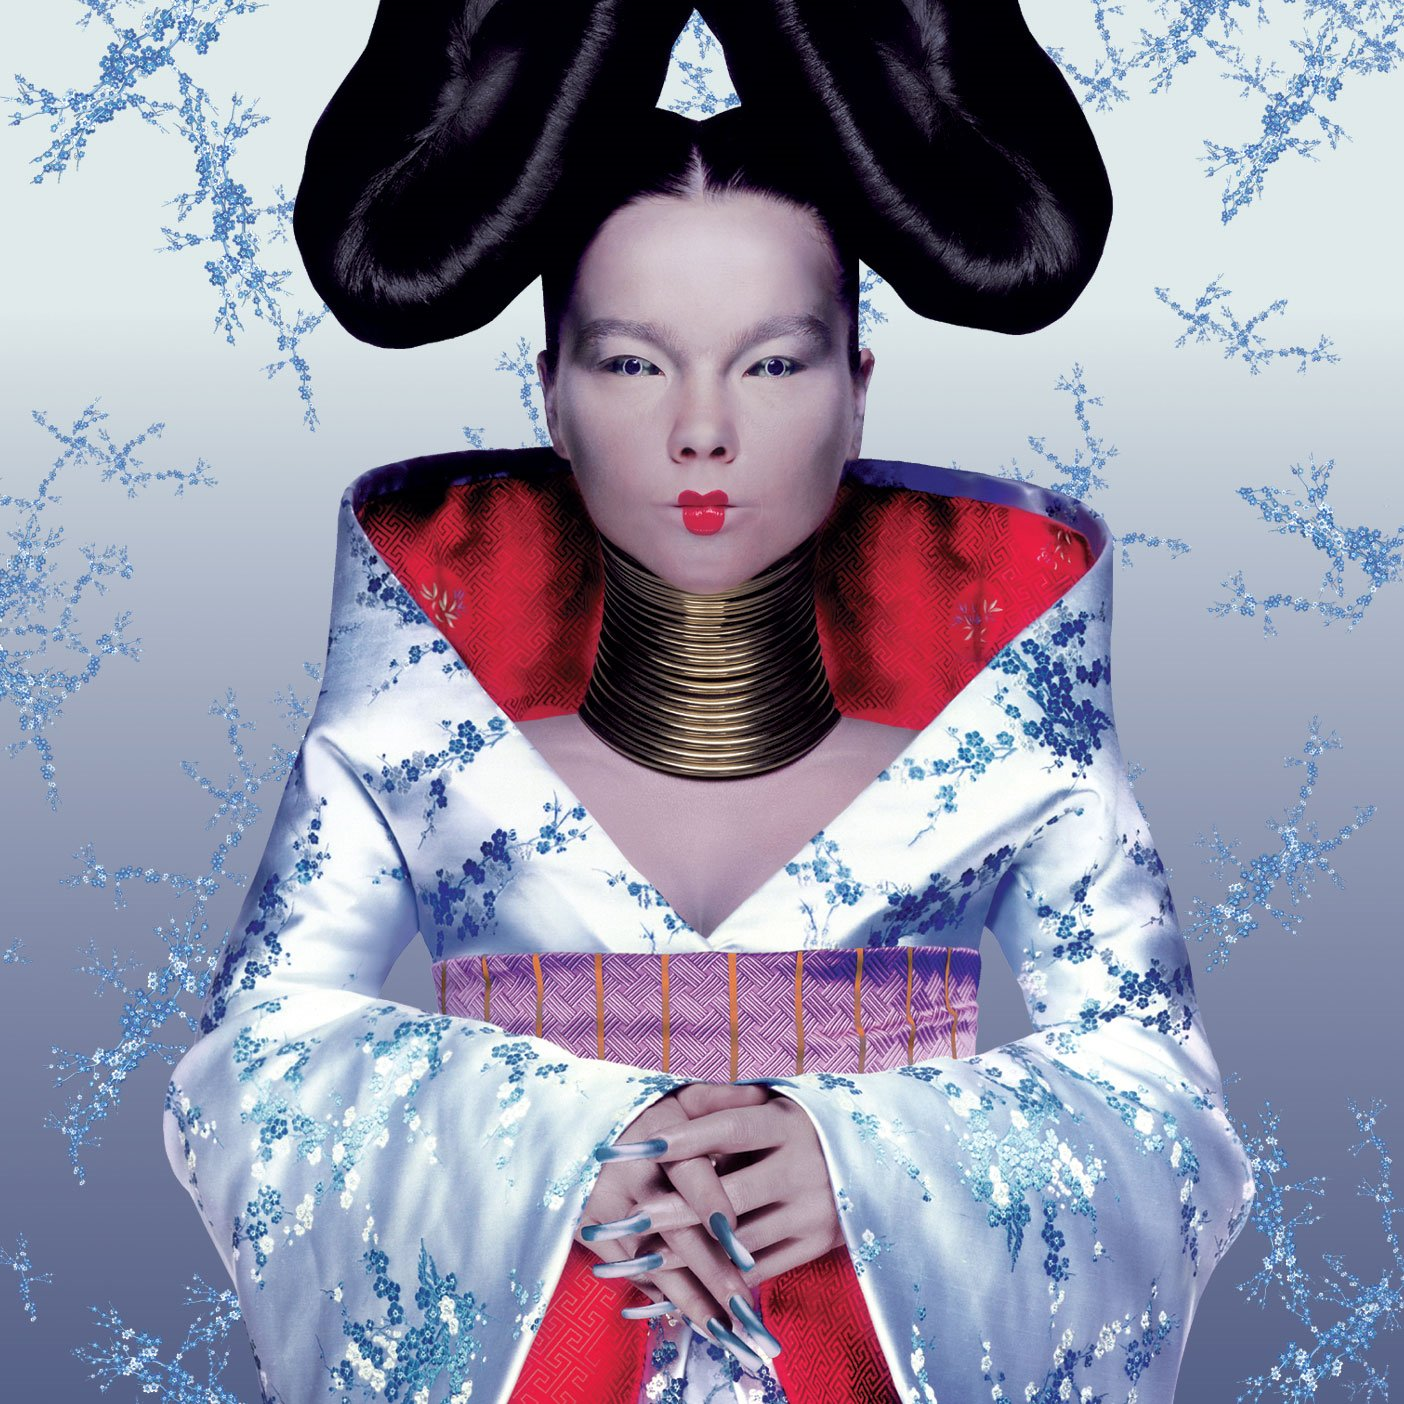 .@Bjork's masterpiece Homogenic turns 20 today; take a look back with us https://t.co/5BqkA4Y1p6 https://t.co/OwHUXeQF0b